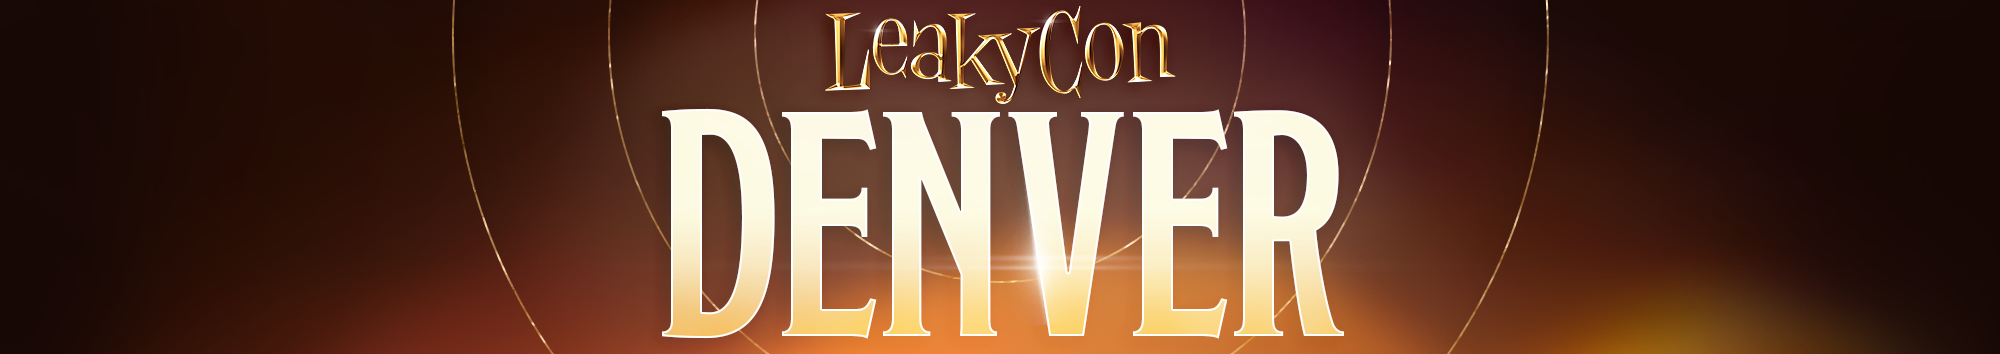 Tickets for LeakyCon 2021: Denver Add On Experiences in Denver from ShowClix